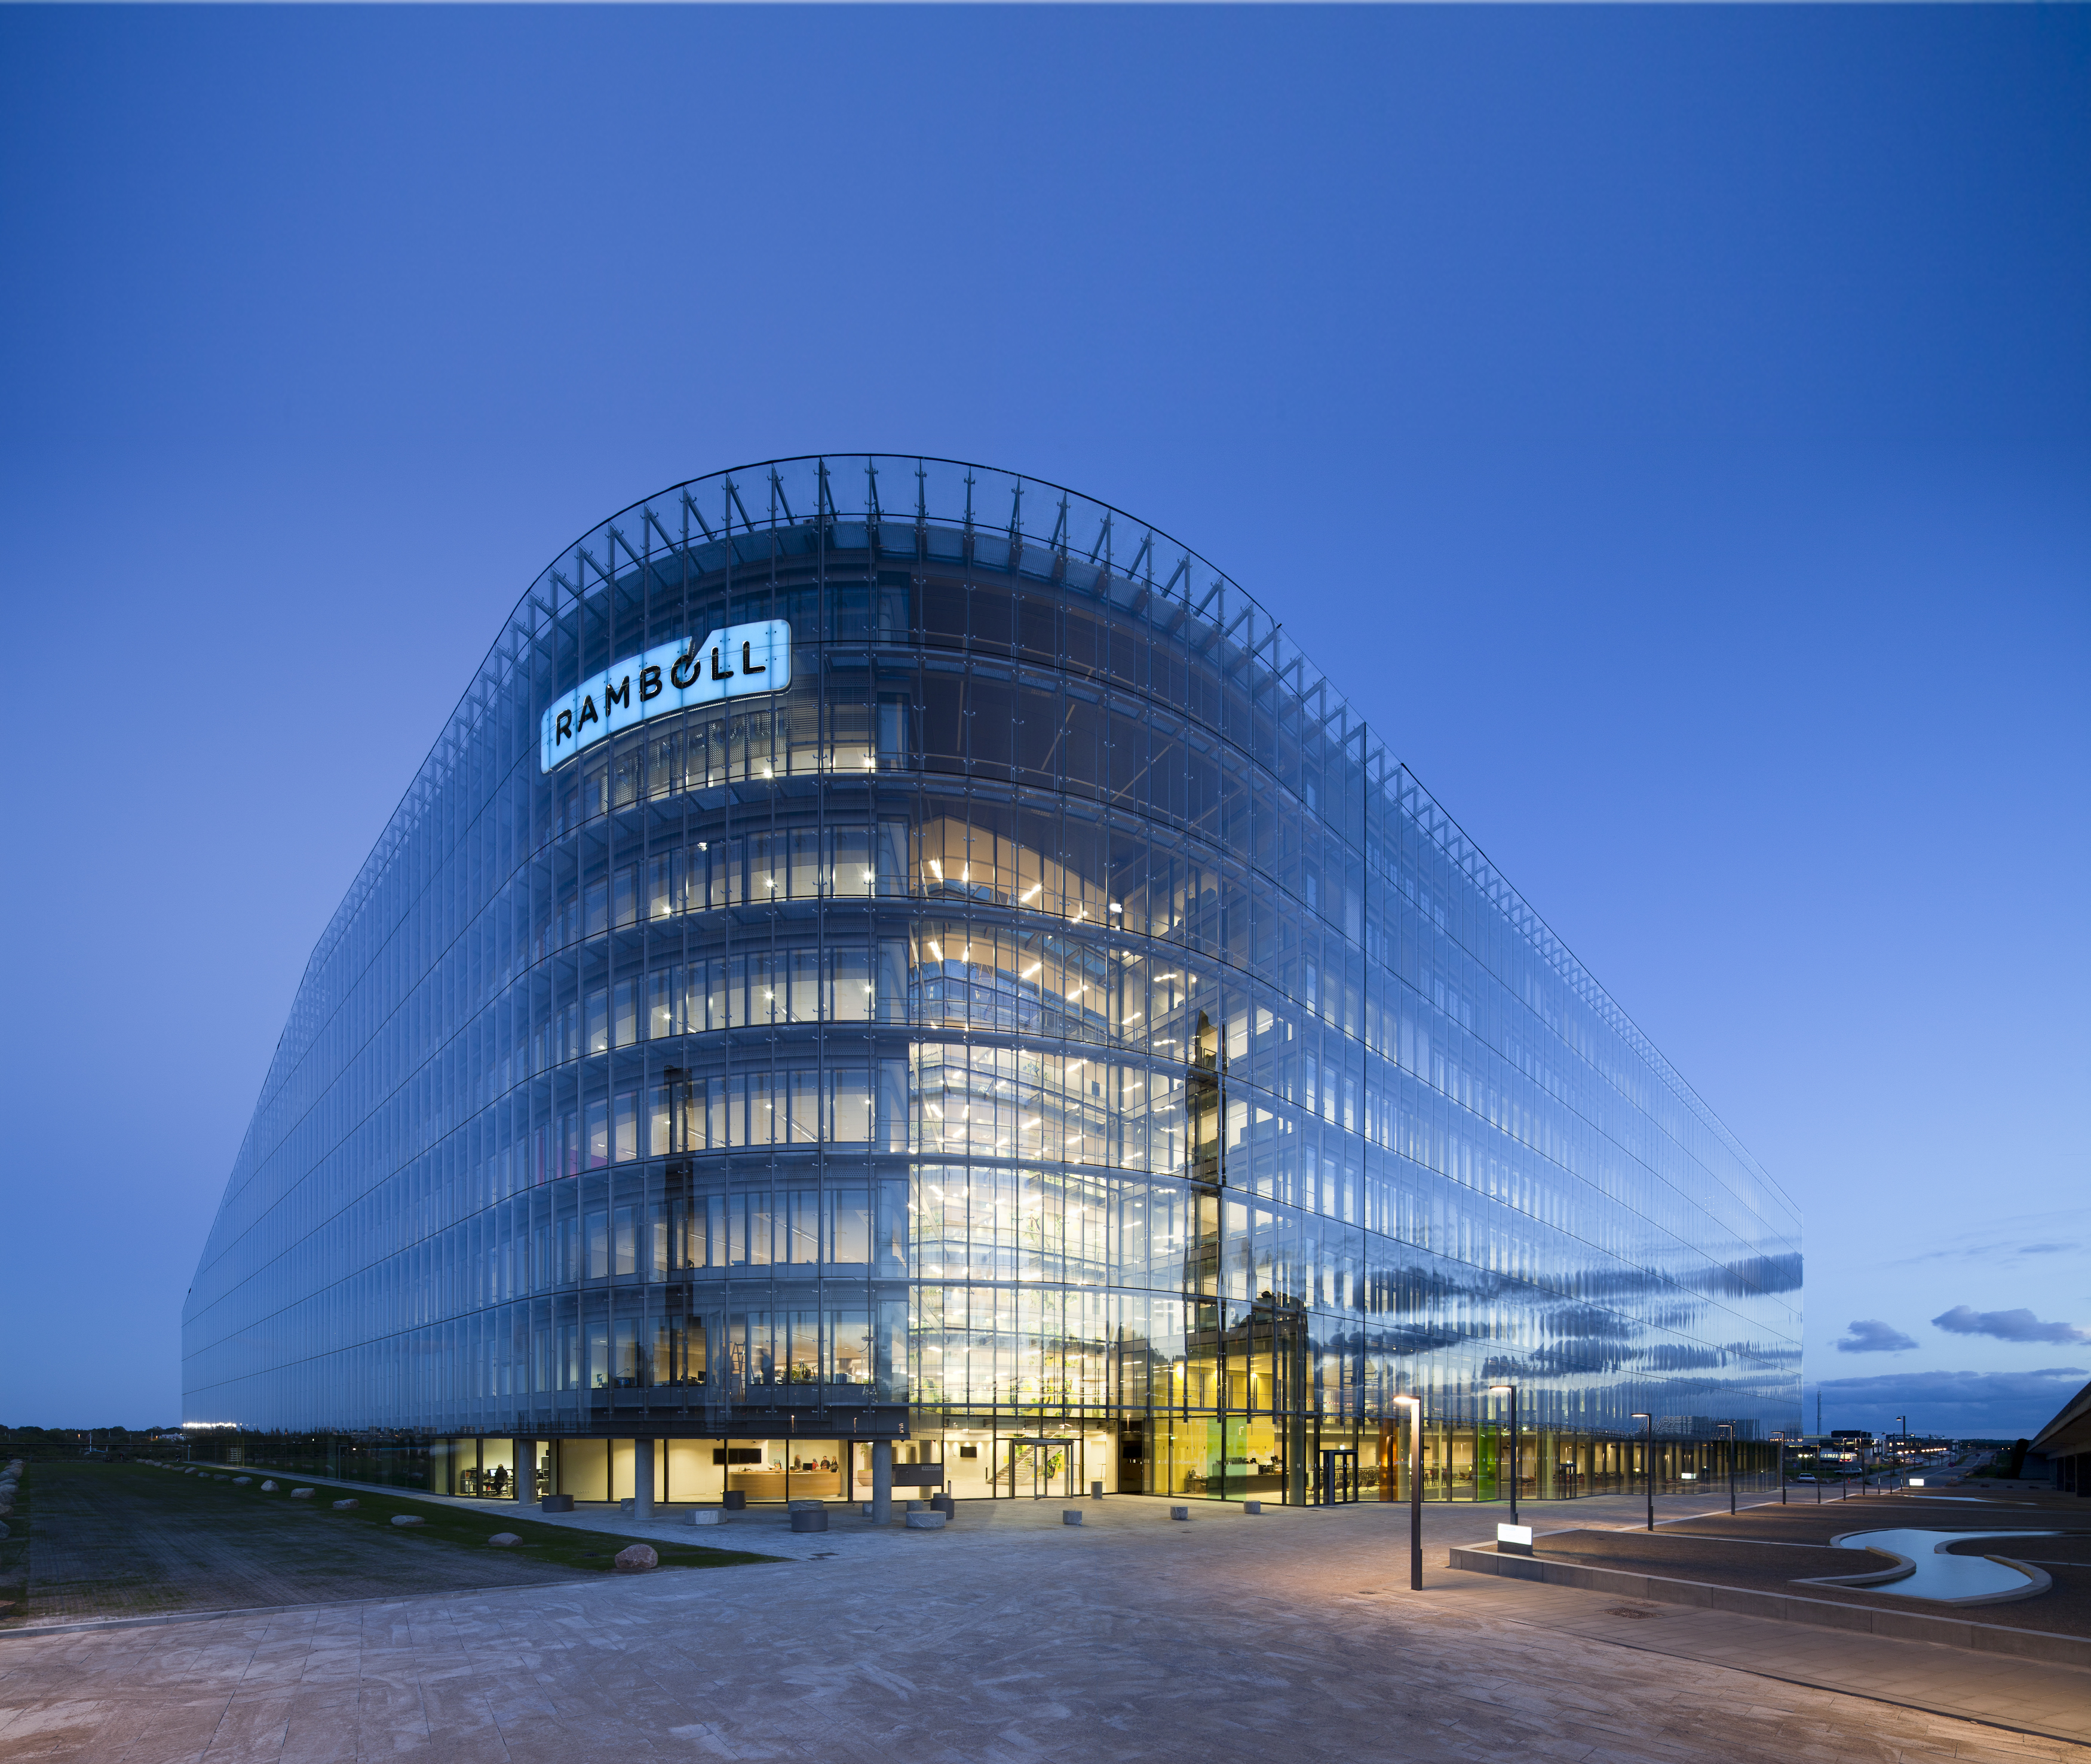 Photo of Ramboll Head Office by MIKKELSEN Architects. Photo Credit: MIKKELSEN Architects